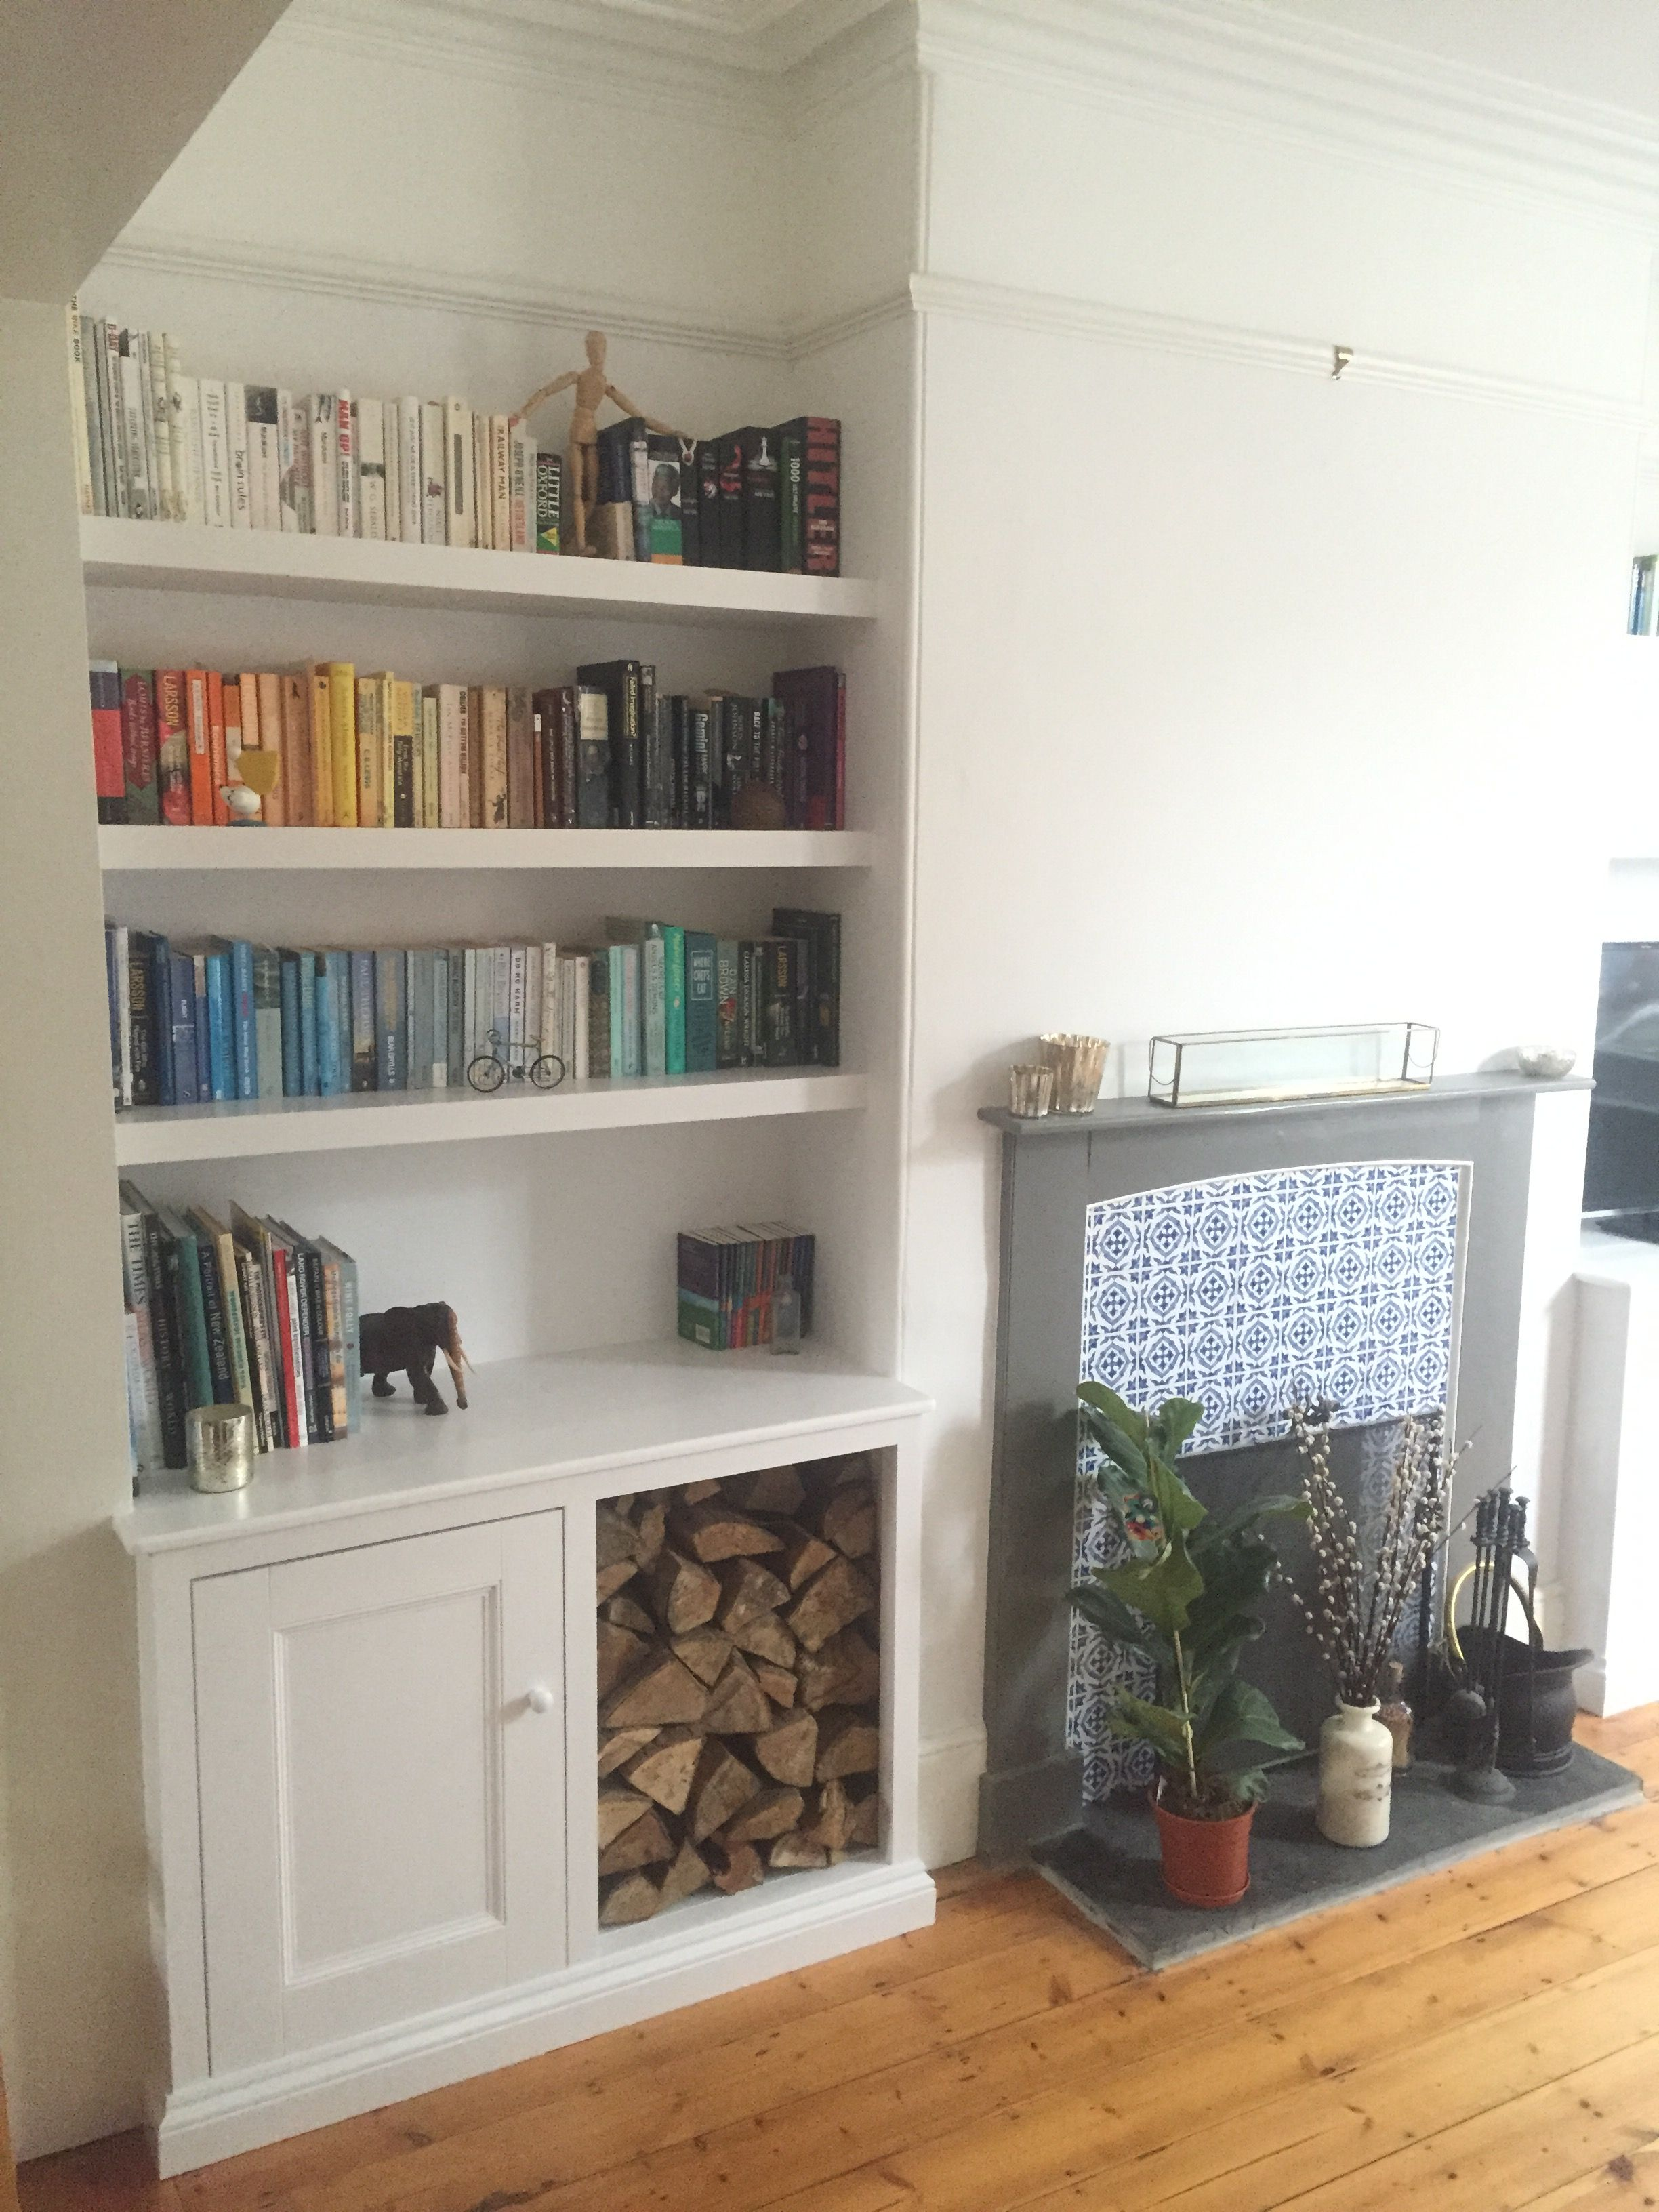 Exeter Alcove Unit With Removable Doors Great For Log Storage